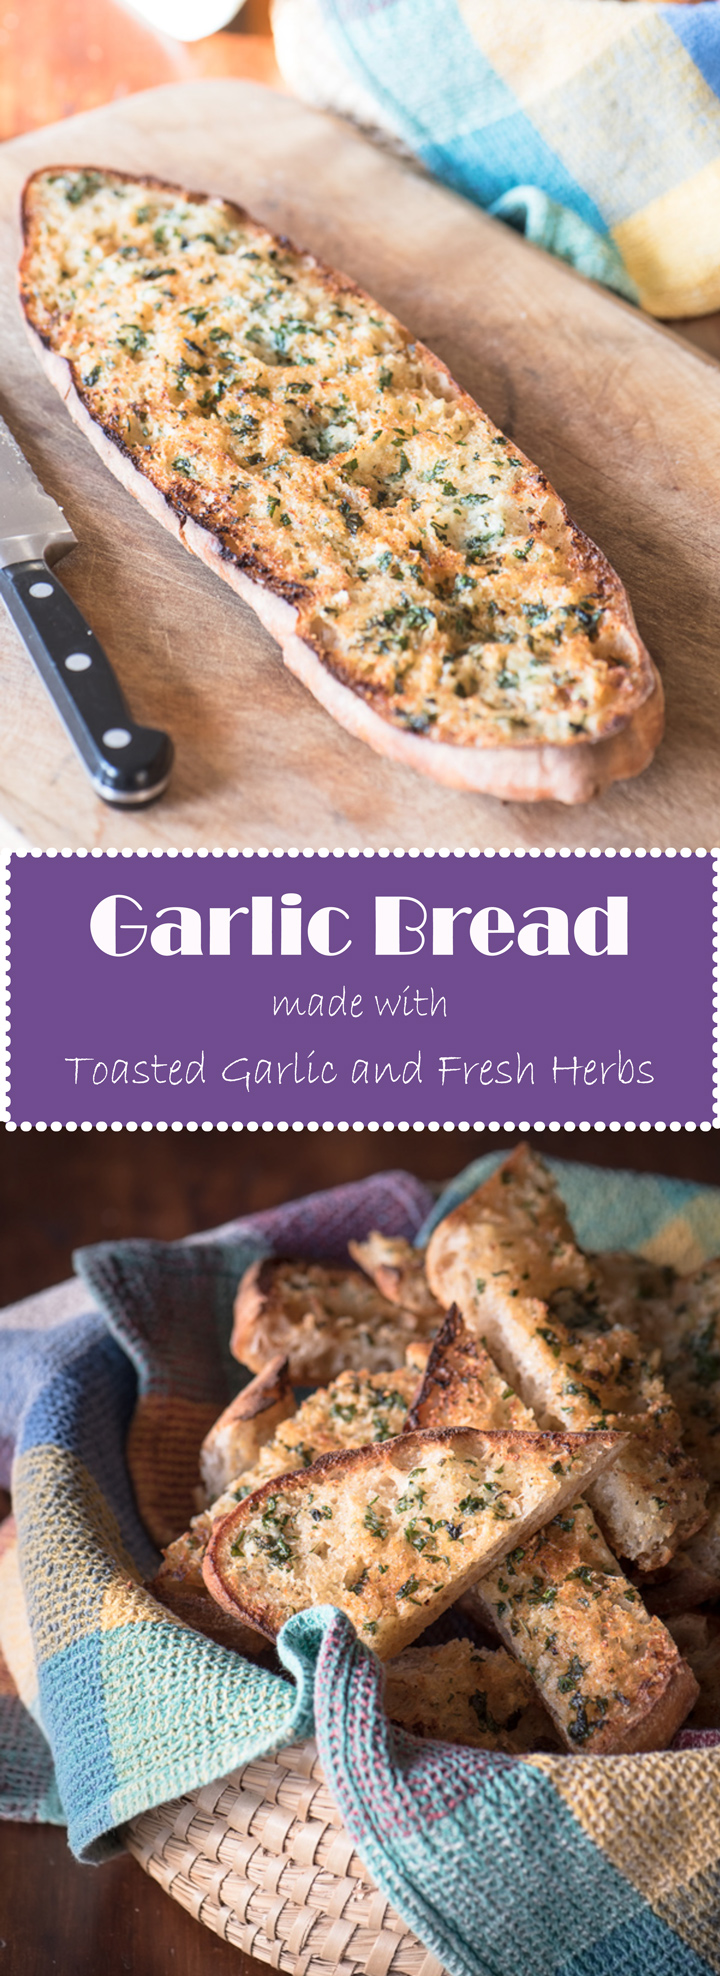 Garlic Bread with Fresh Herbs is made with good quality bread, toasted garlic, butter, Romano cheese and fresh herbs.